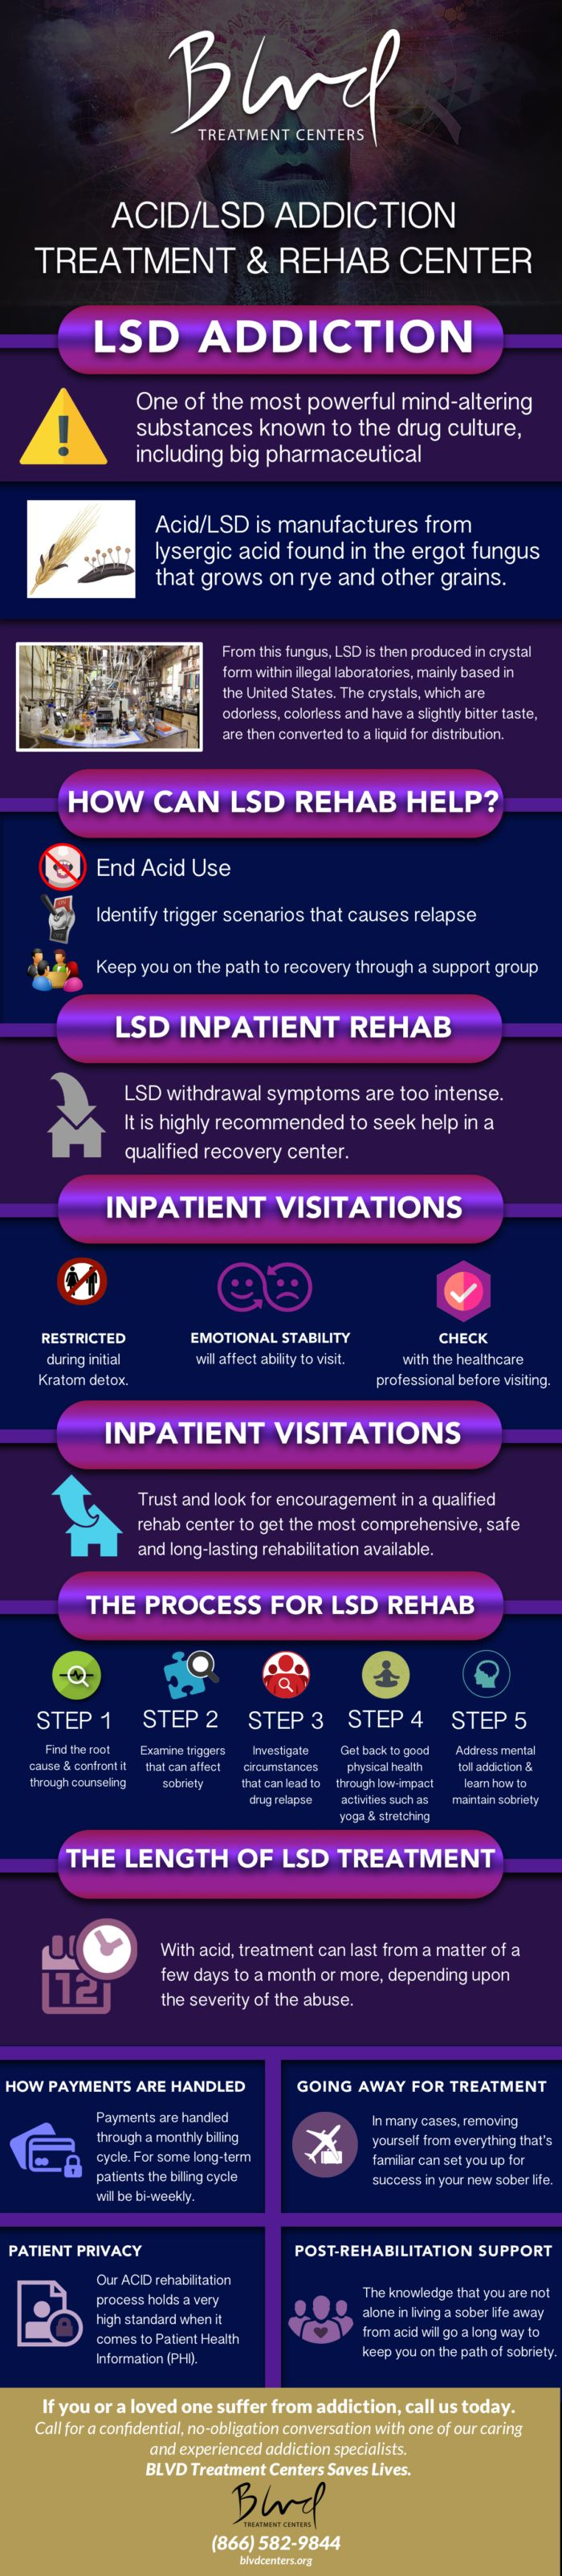 https://www.blvdcenters.org/acid-lsd-rehab-treatment-centers  At BLVD we offer personalized Acid / LSD addiction treatment, recovery and rehab facilities at our centers, spread throughout California. Call today (888) 537-6671.